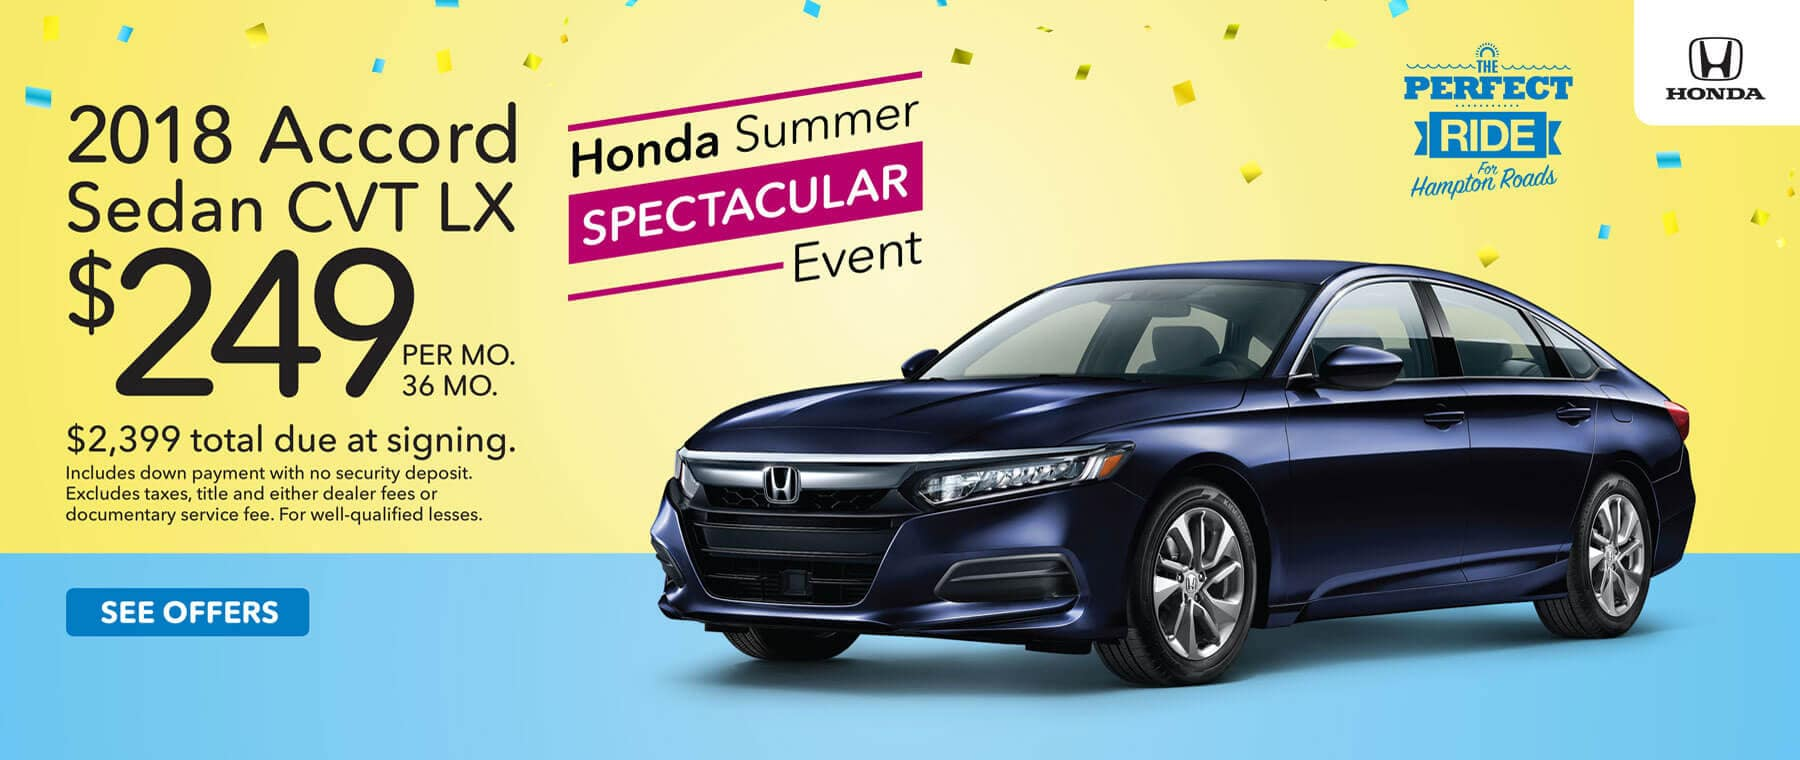 Honda Summer Spectacular Event 2018 Accord Lease Offer